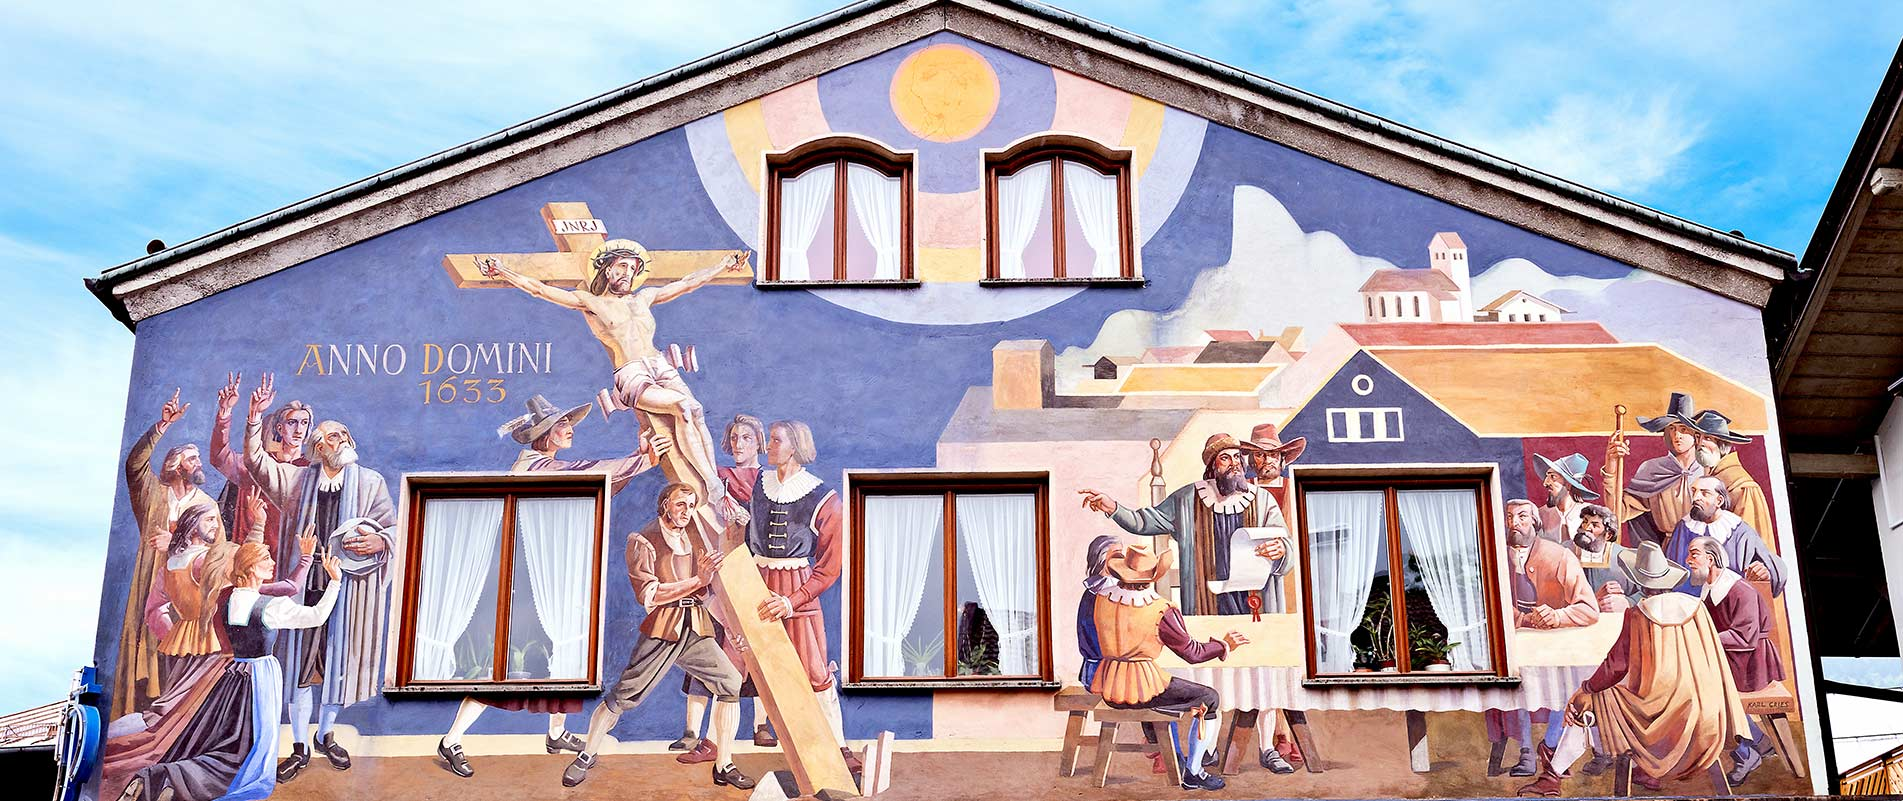 Mural of the Passion Play on the side of building in Oberammergau, Germany.